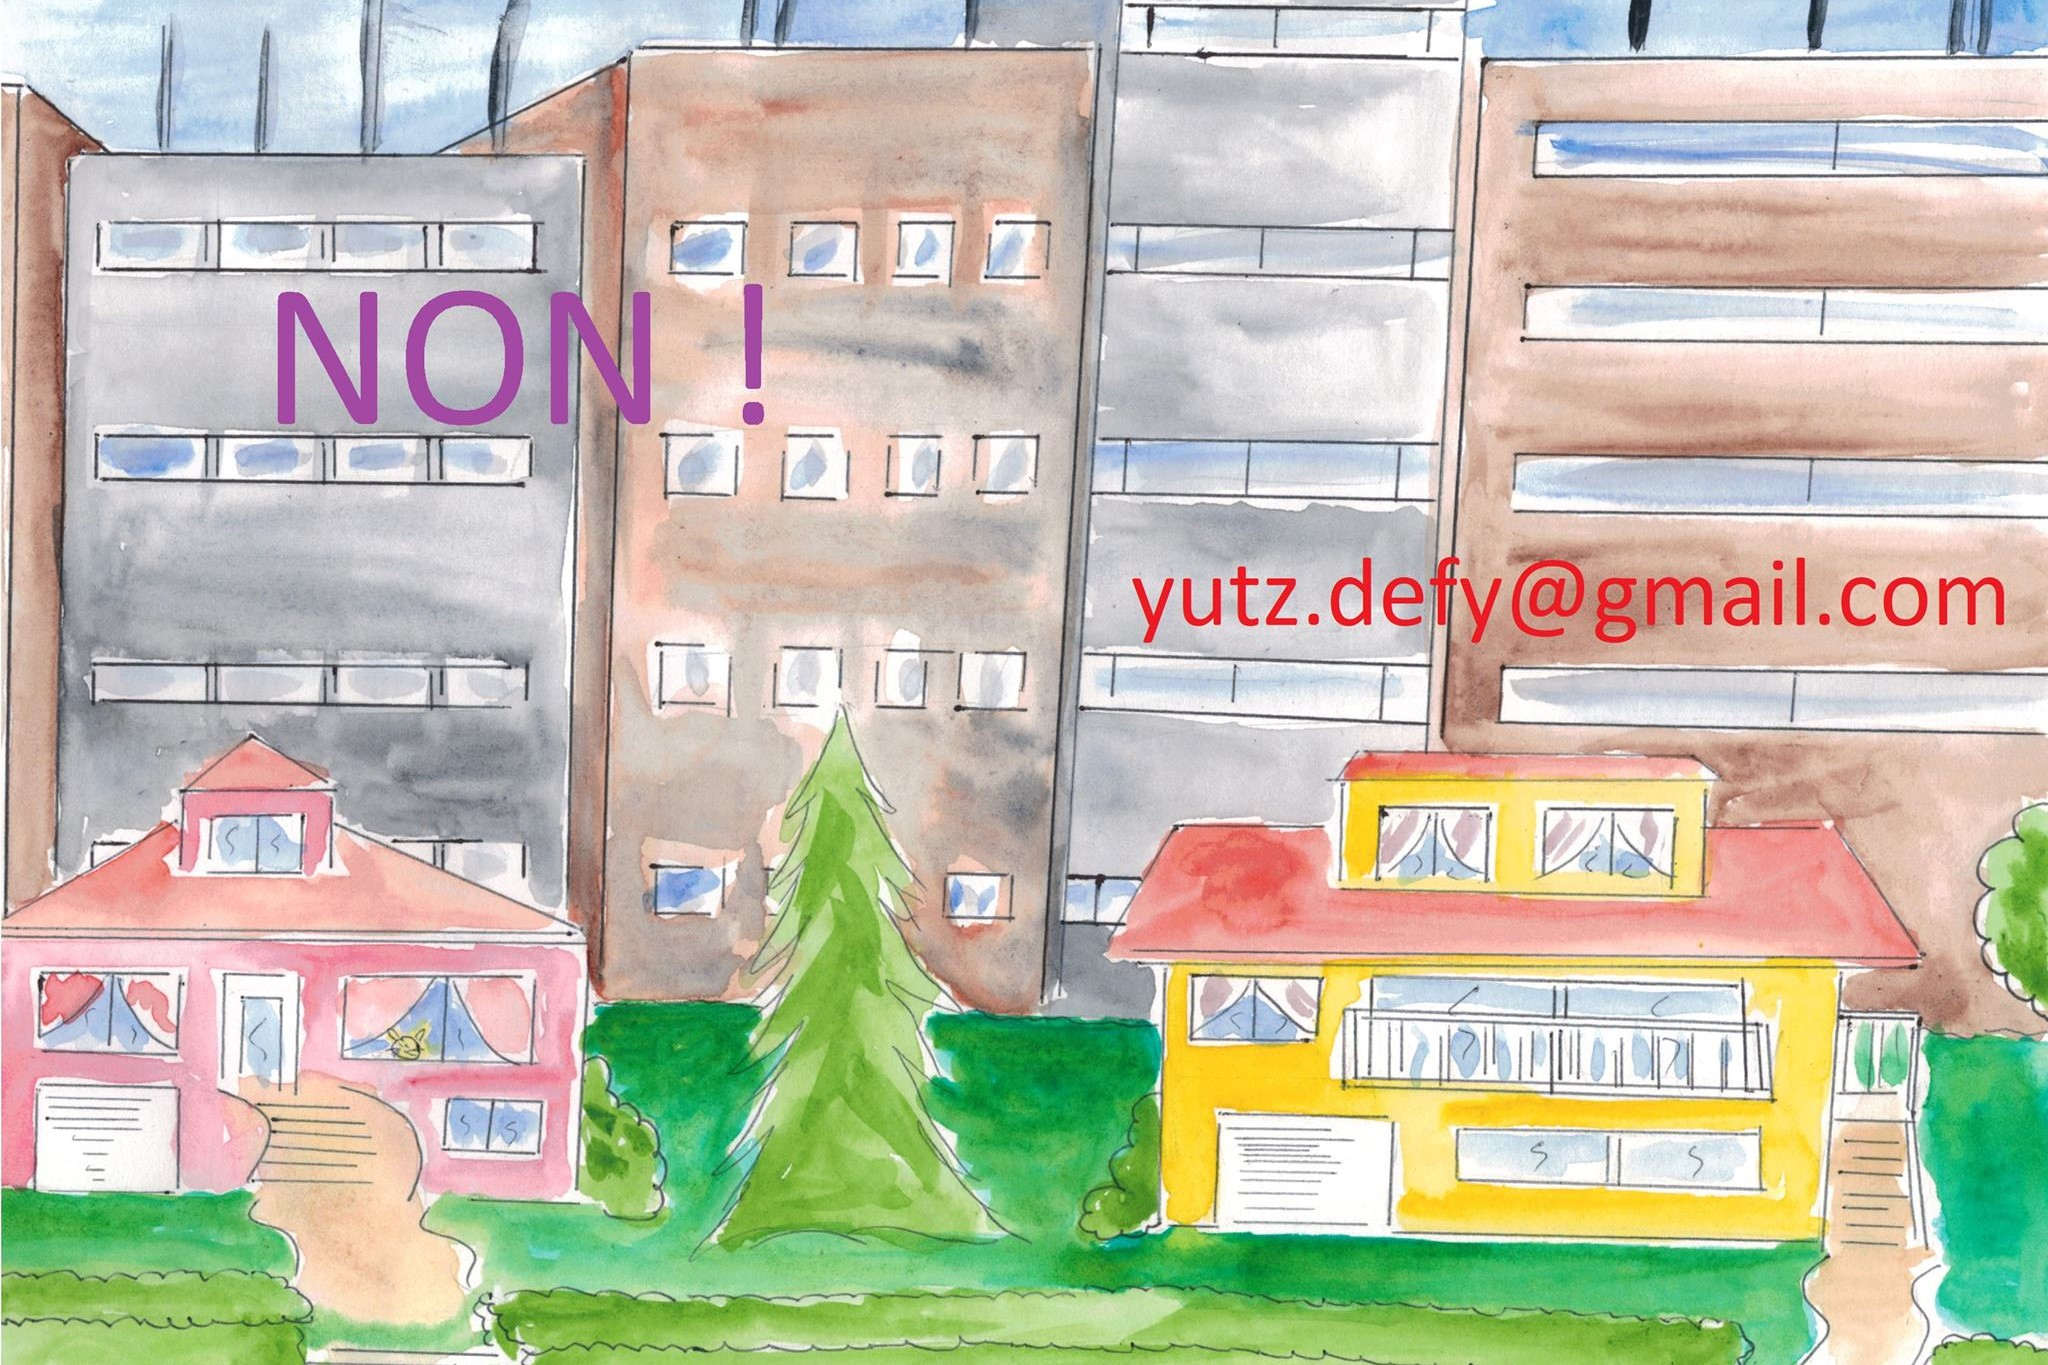 Yutz: against delirious concrete (drawing by the collective DEFY)